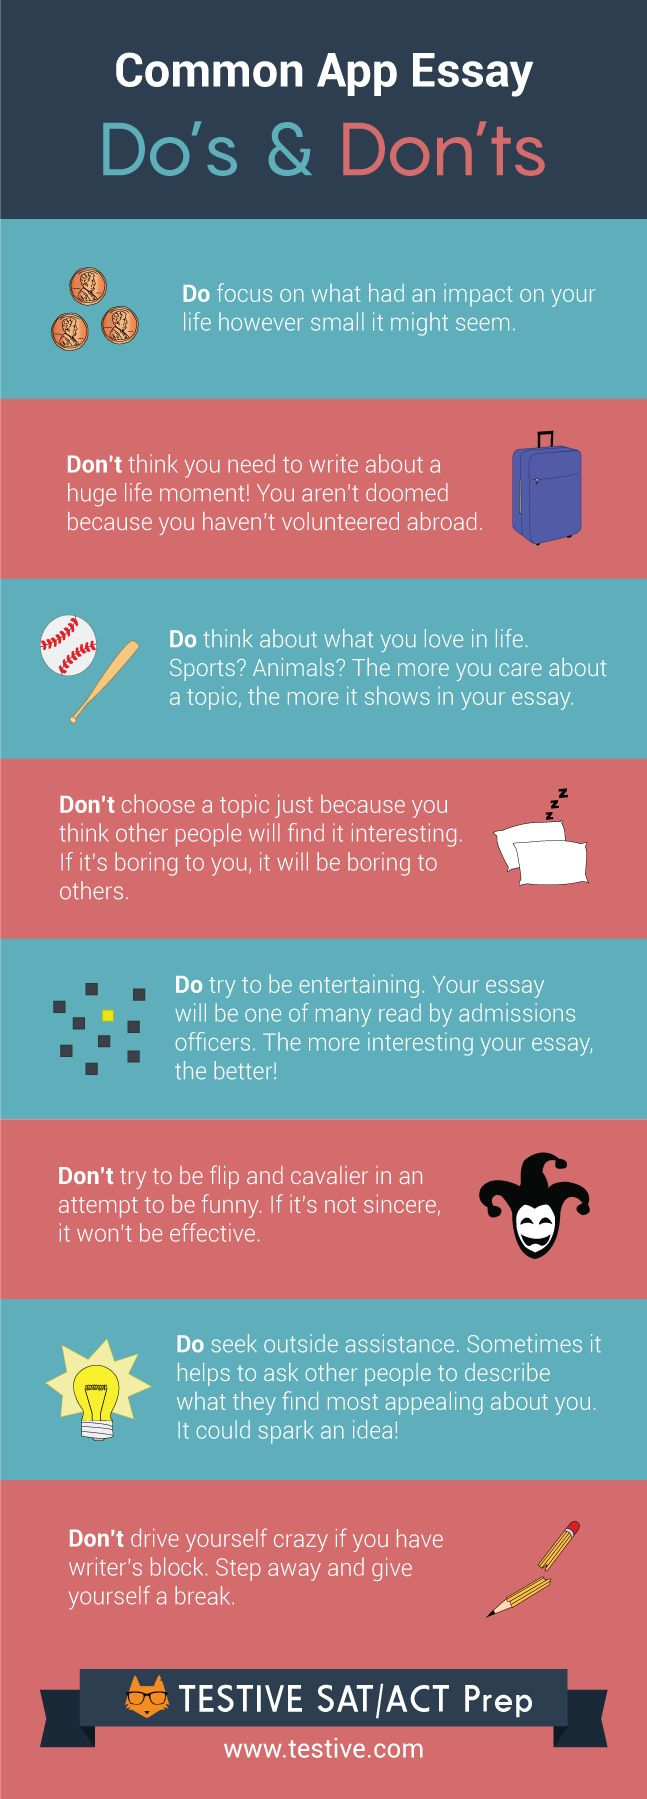 best college essays images high schools collage  best words to describe yourself for college essay college search tool the best school for you use this tool to search by categories such as major and